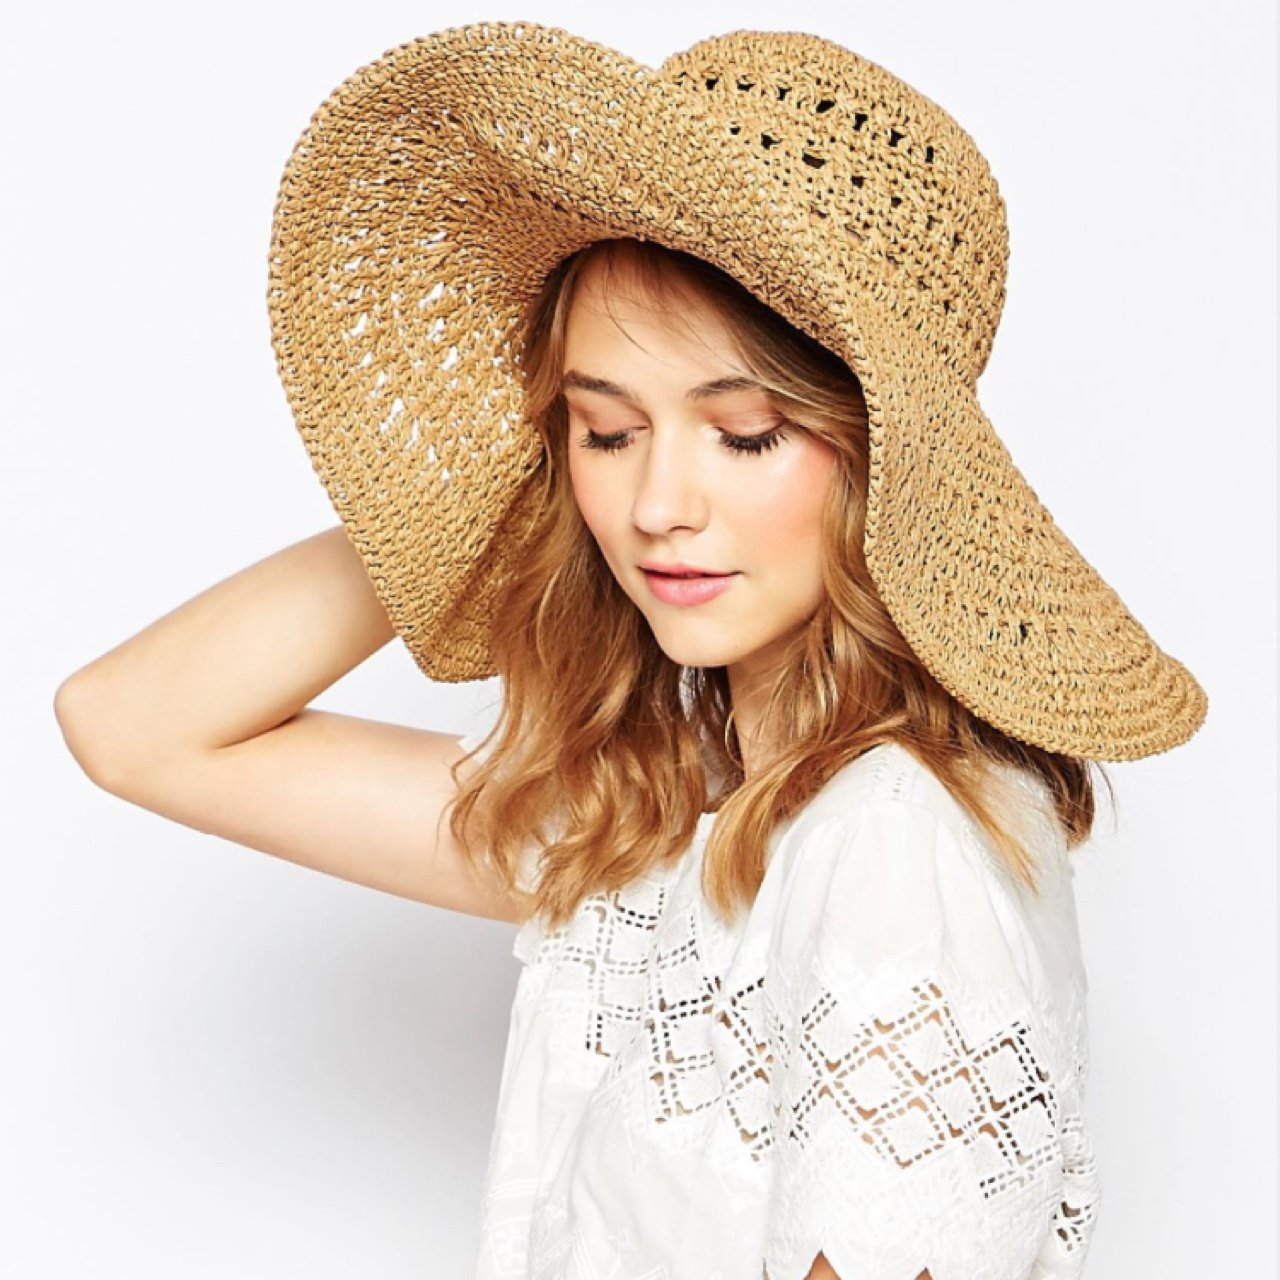 French connection floppy hat. Perfect for sunny holidays or - Depop cdb6988d922